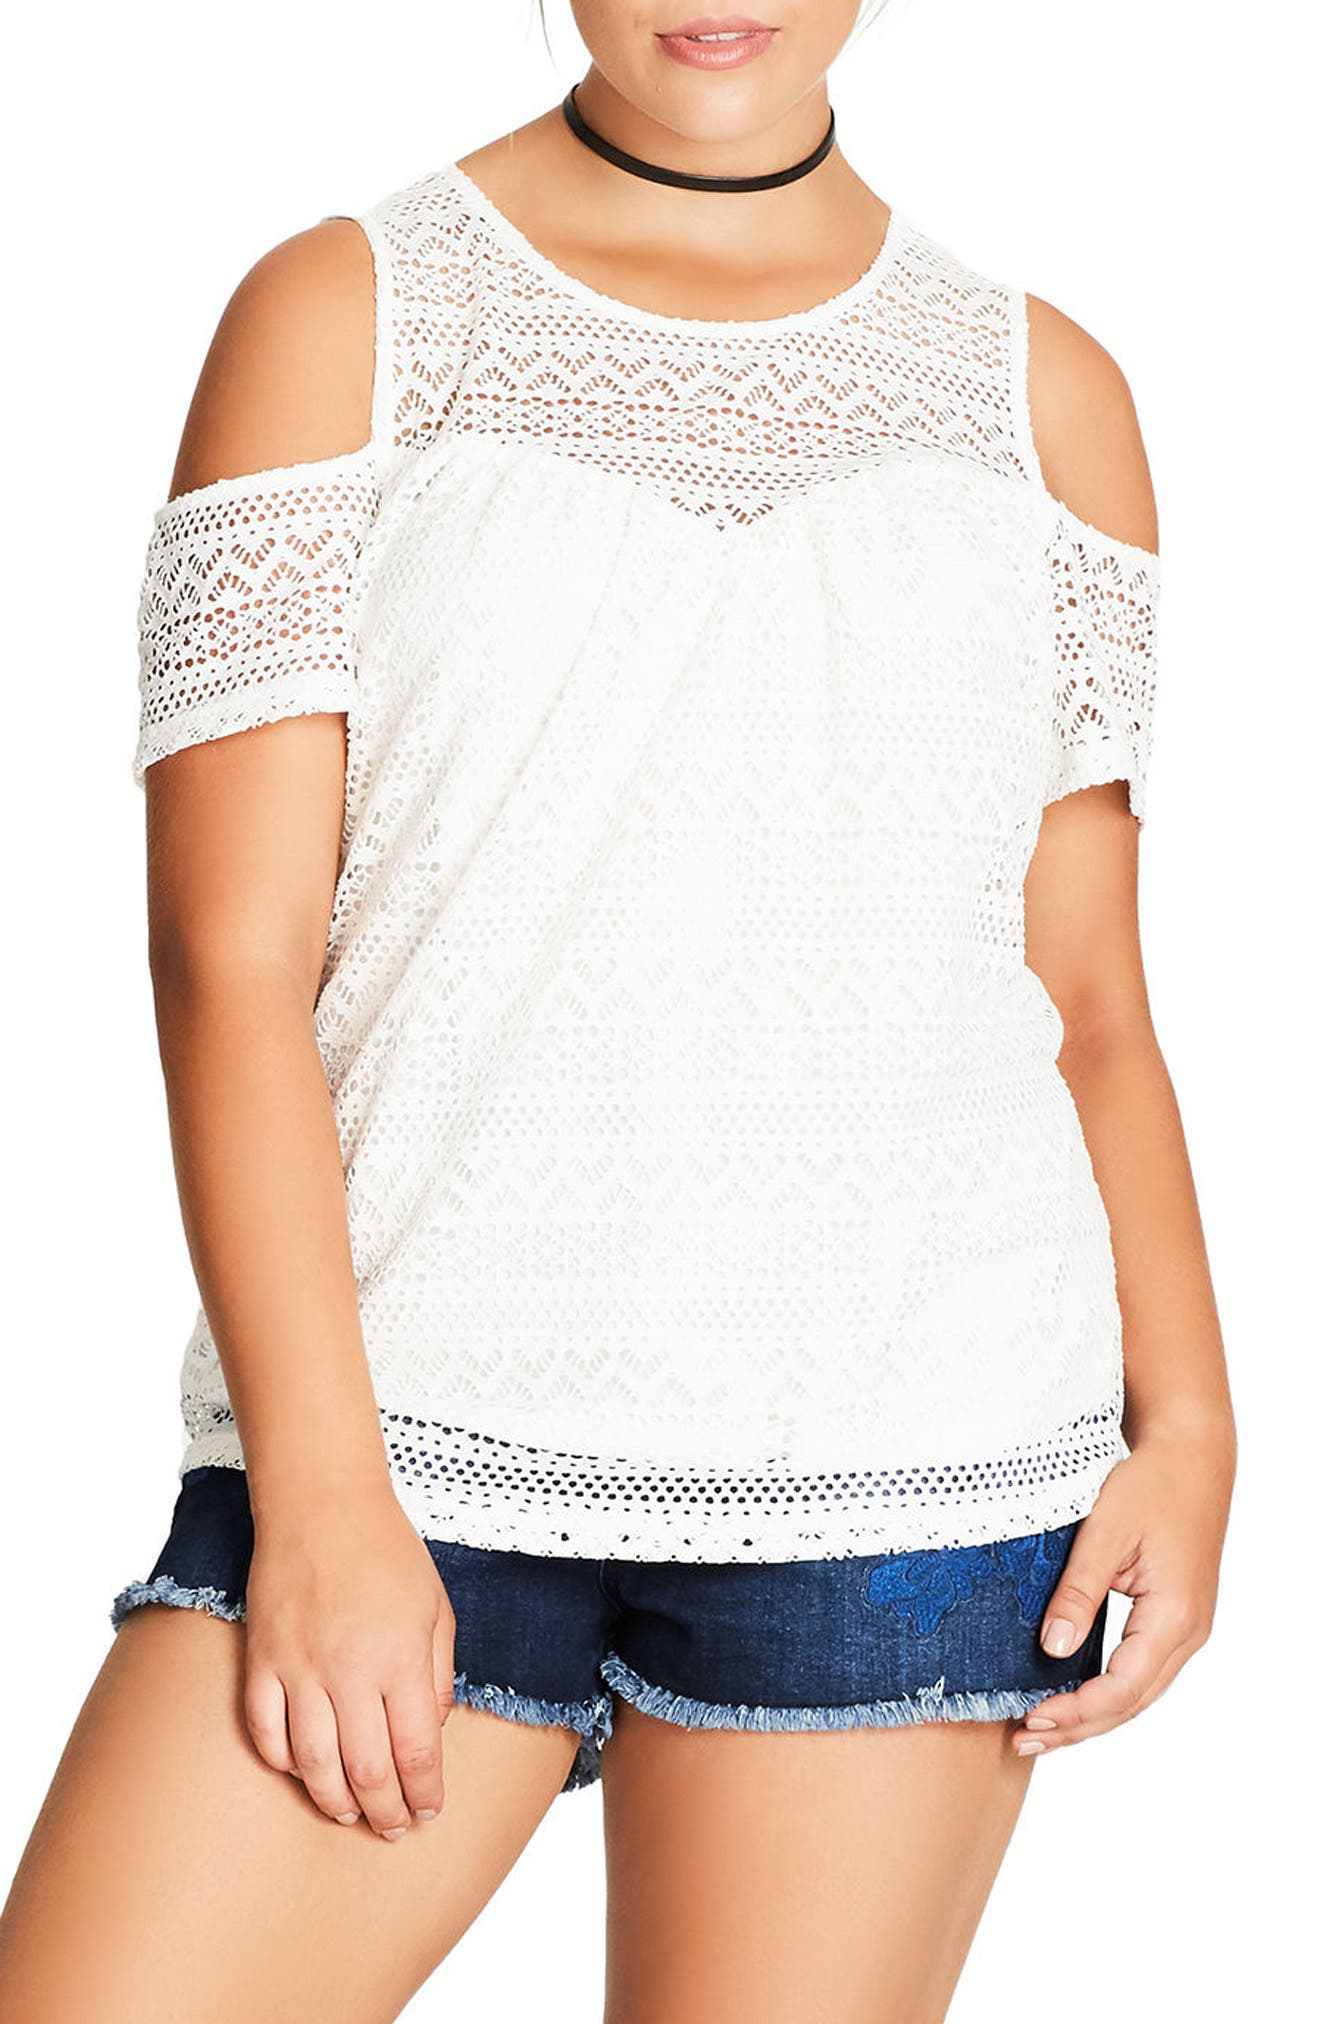 Main Image - City Chic Serenity Lace Cold Shoulder Top (Plus Size)